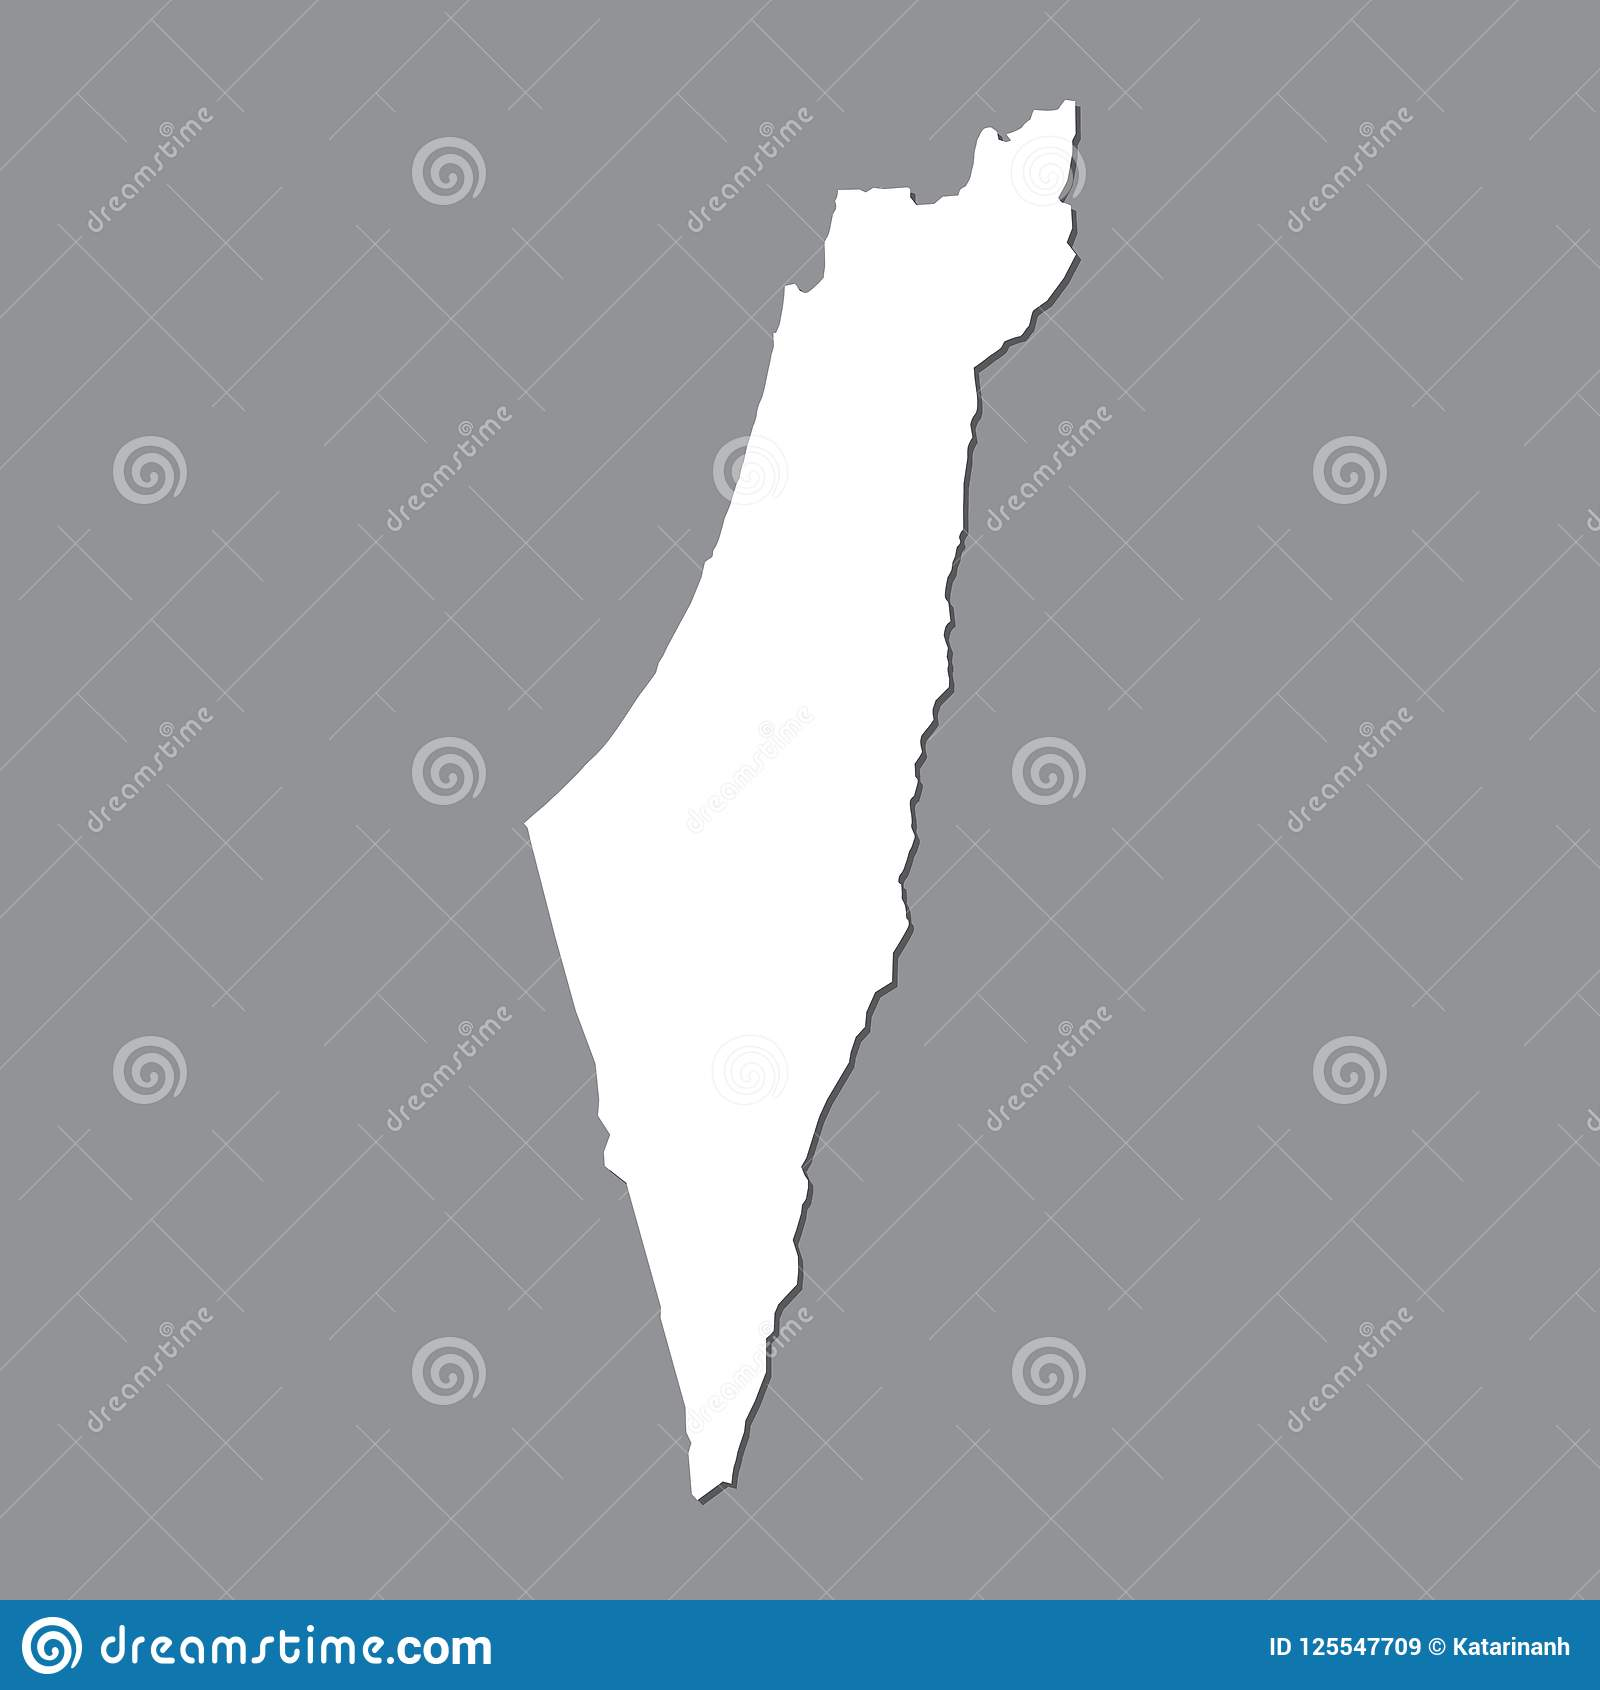 Picture of: Blank Map Israel High Quality Map Of Israel On Gray Background For Your Web Site Design Logo App Ui Stock Vector Stock Vector Illustration Of Geographic Land 125547709